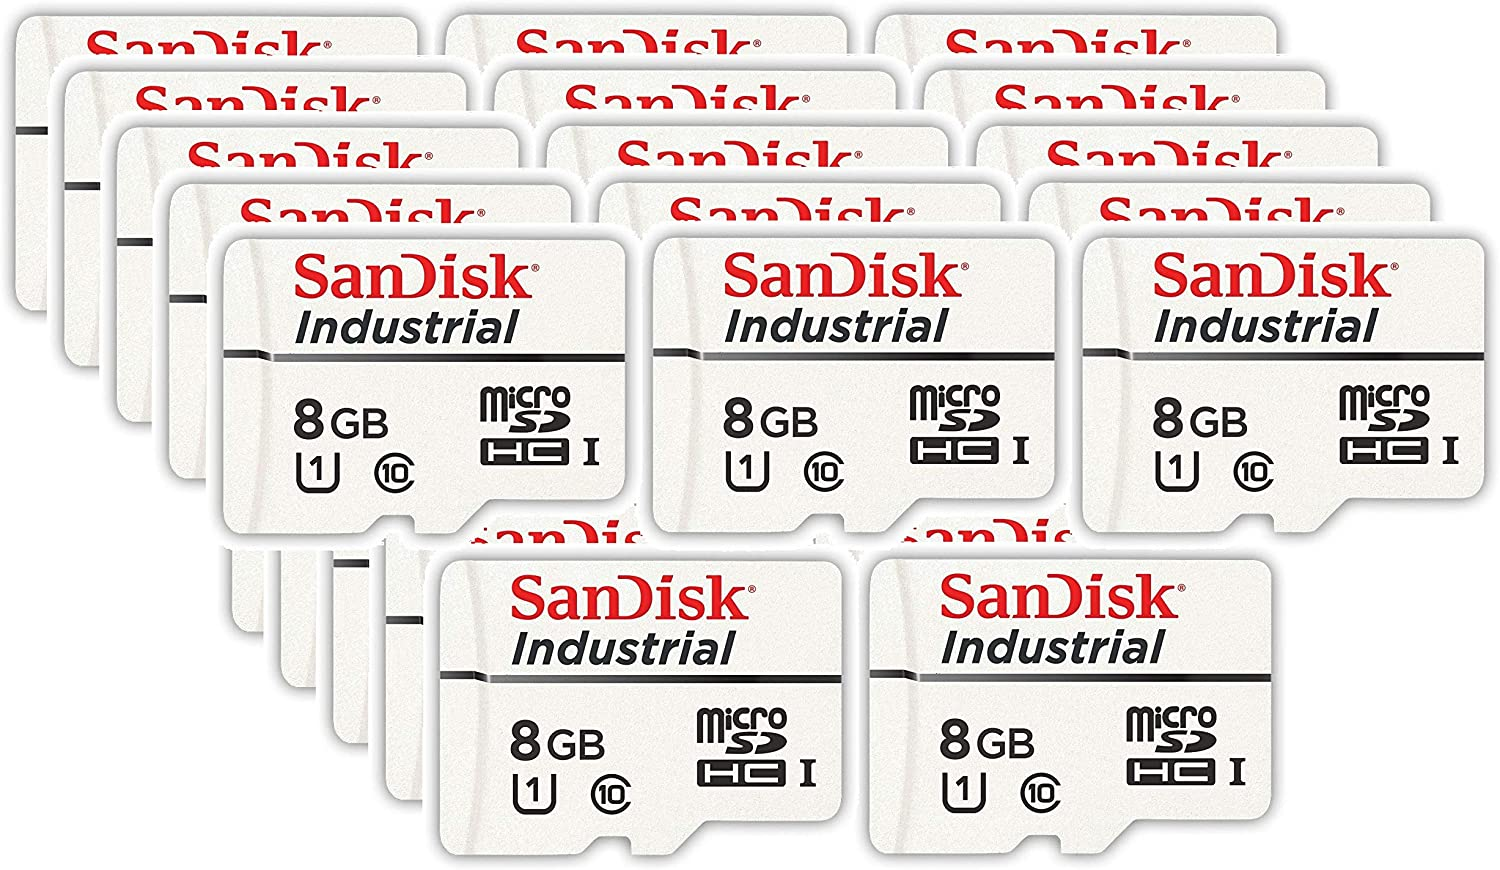 Everything But Stromboli Card Reader 1 Bulk 10 Pack in Cases Bundle with SDSDQAF3-008G-I SanDisk Industrial 8GB Micro SD Memory Card Class 10 UHS-I MicroSDHC